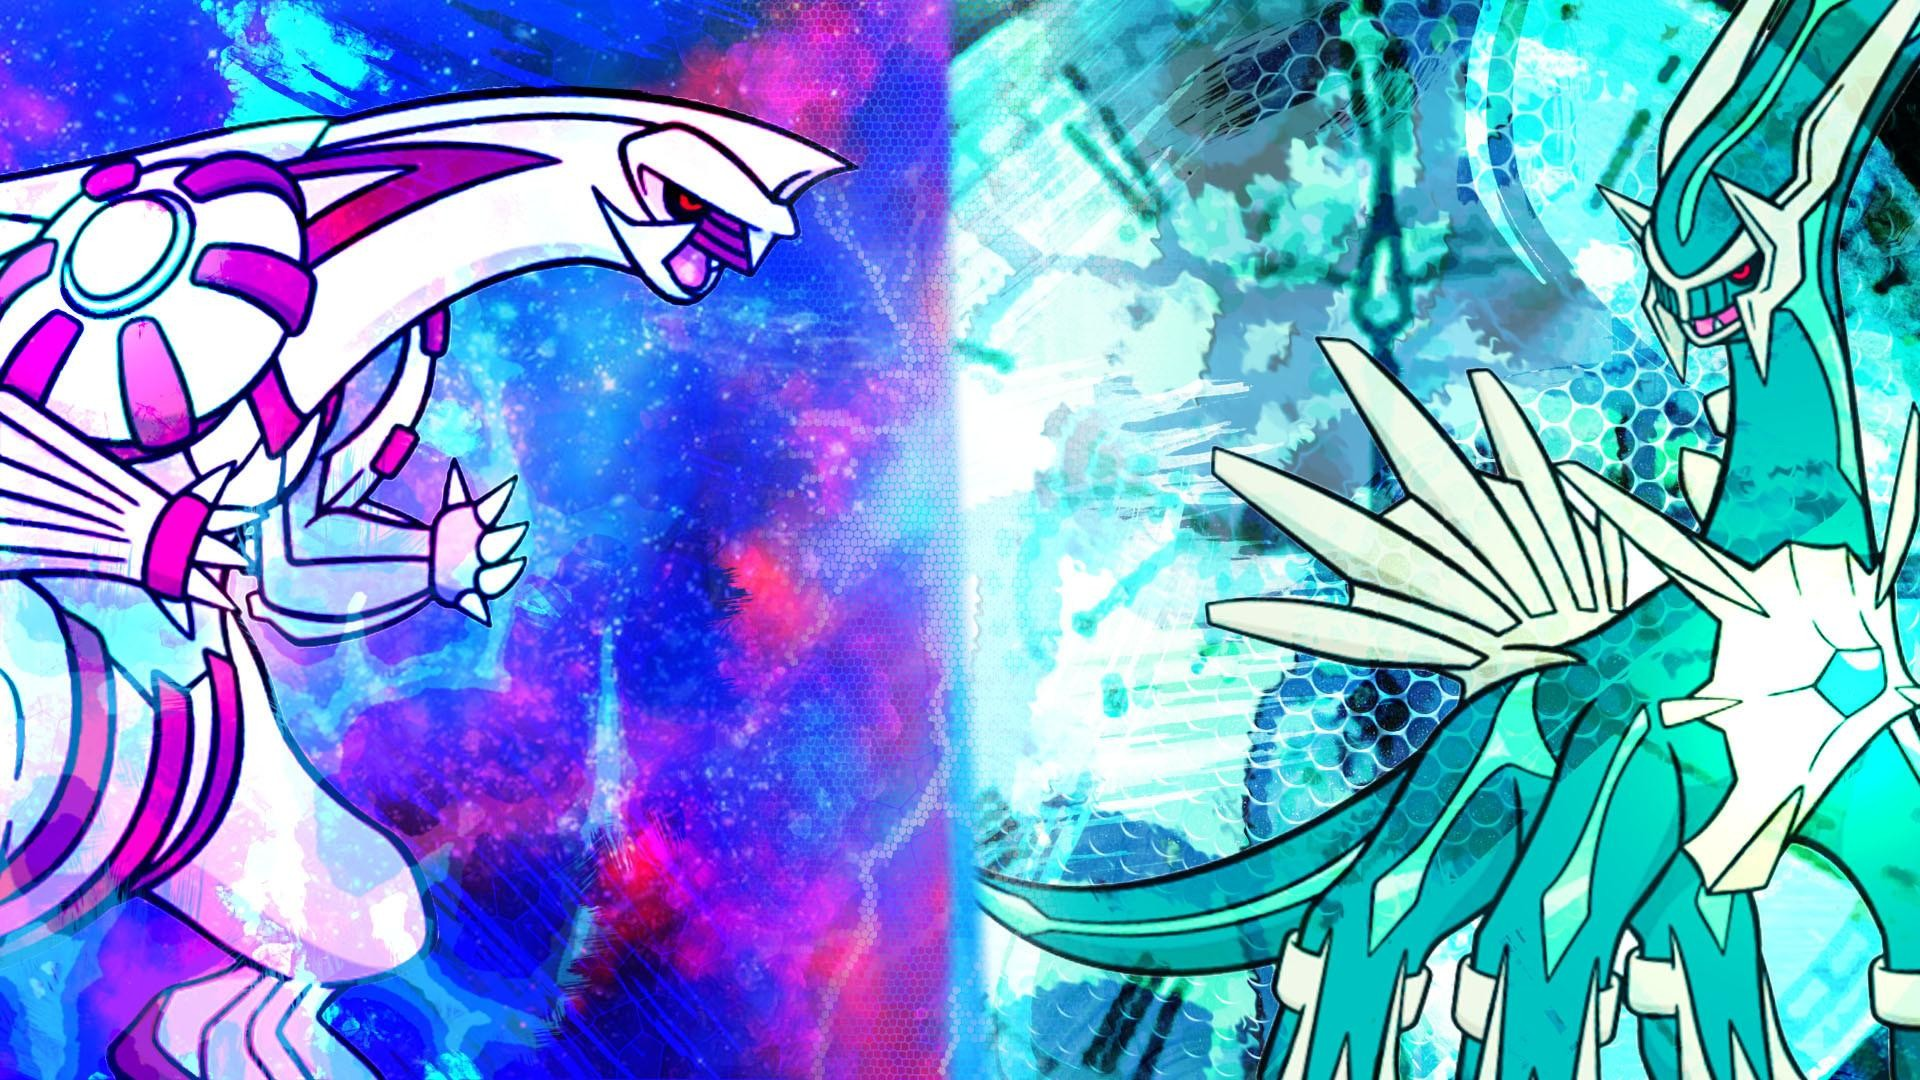 Res: 1920x1080, pokemon dialga wallpaper #372755